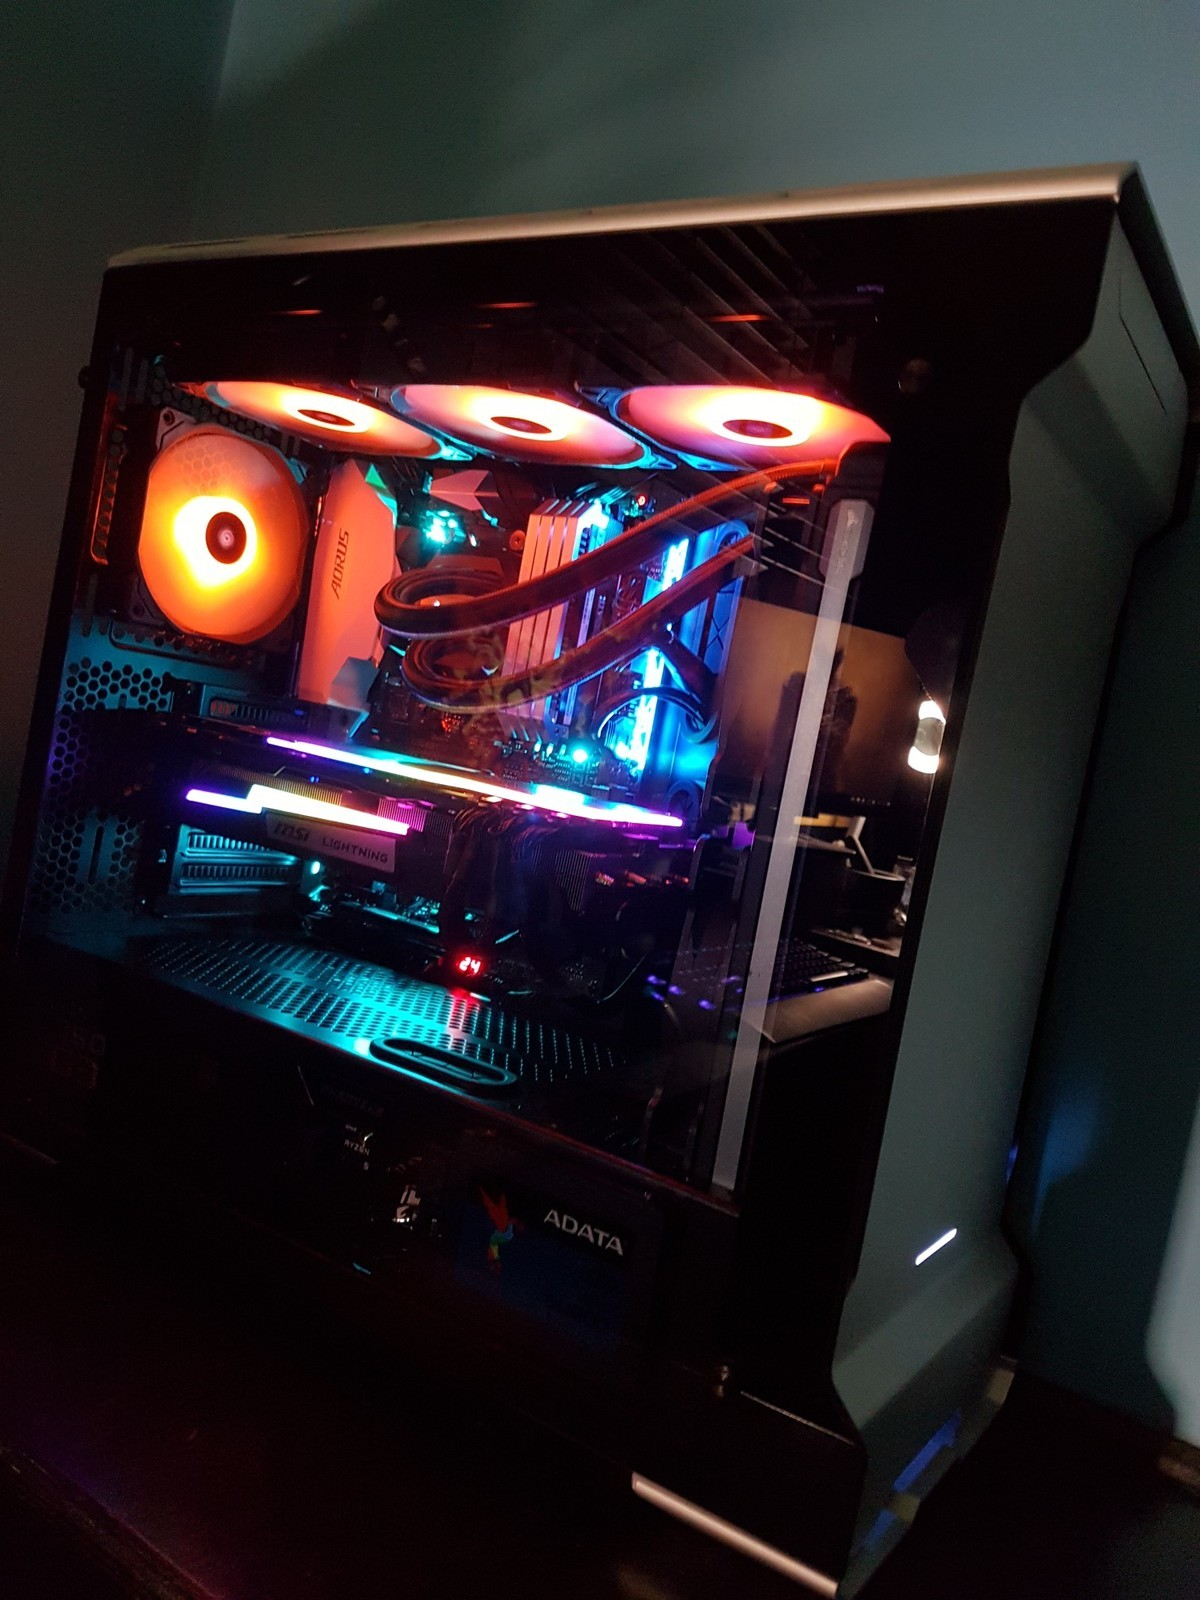 Build complete; welcome the New Hotness!. After almost a year and a half of waiting I present to you my new computer tasty rgb goodness find the full build here